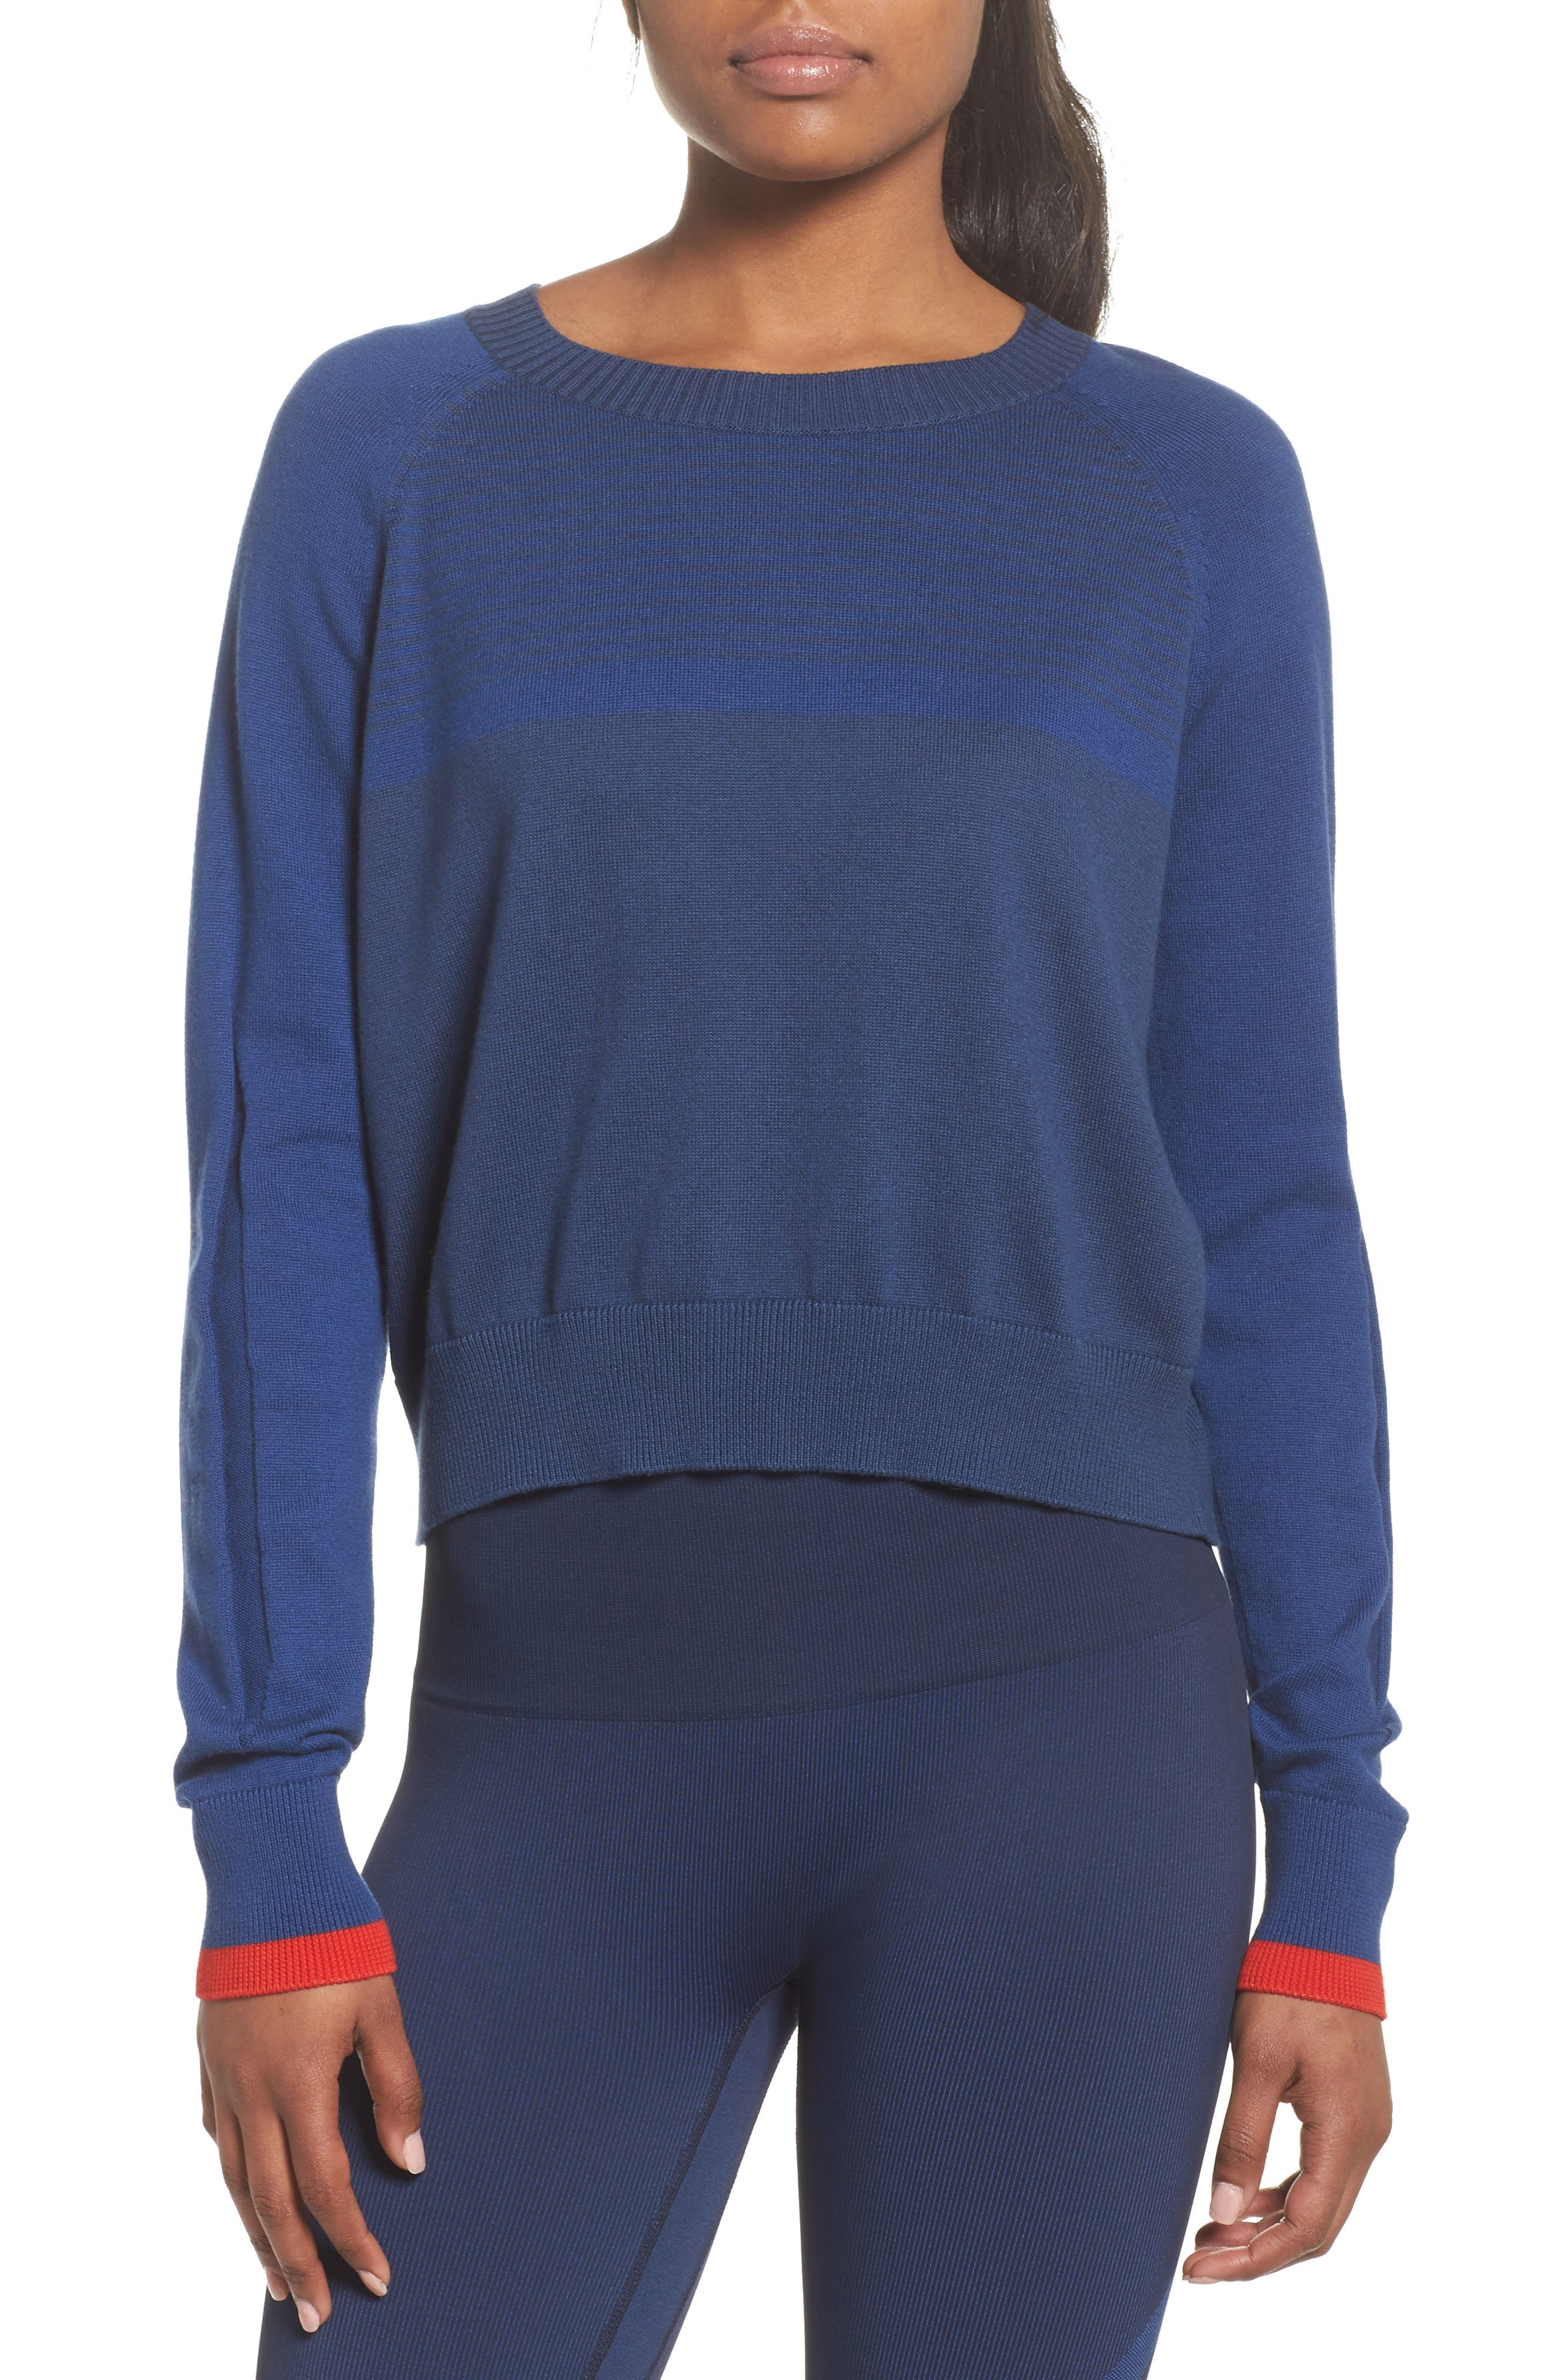 Prism Cropped Sweater,                             Main thumbnail 1, color,                             400